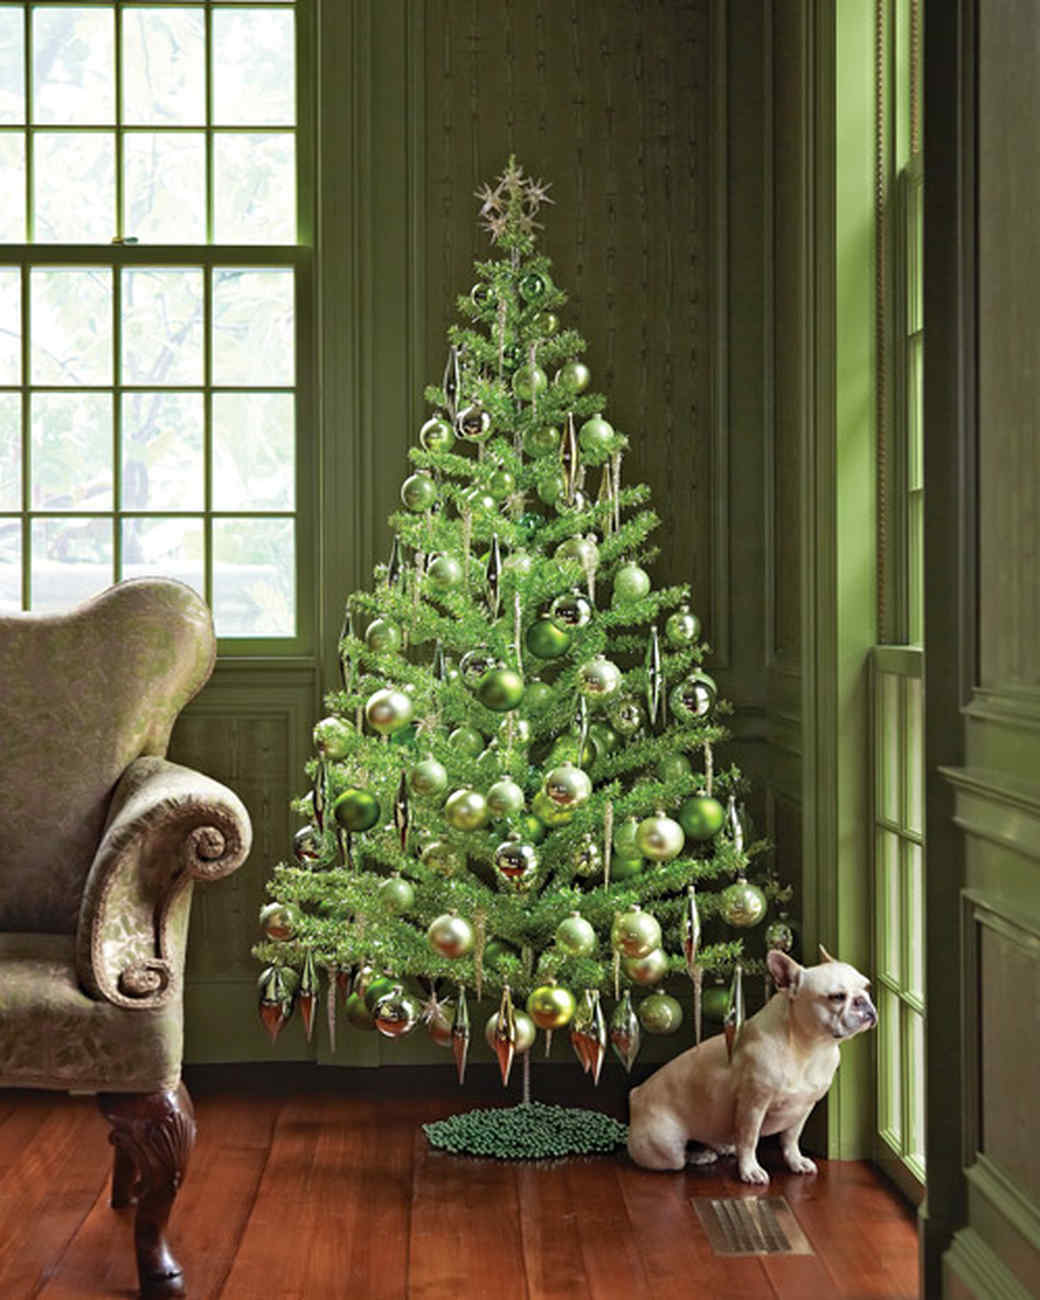 Marthas holiday decorating ideas martha stewart publicscrutiny Image collections